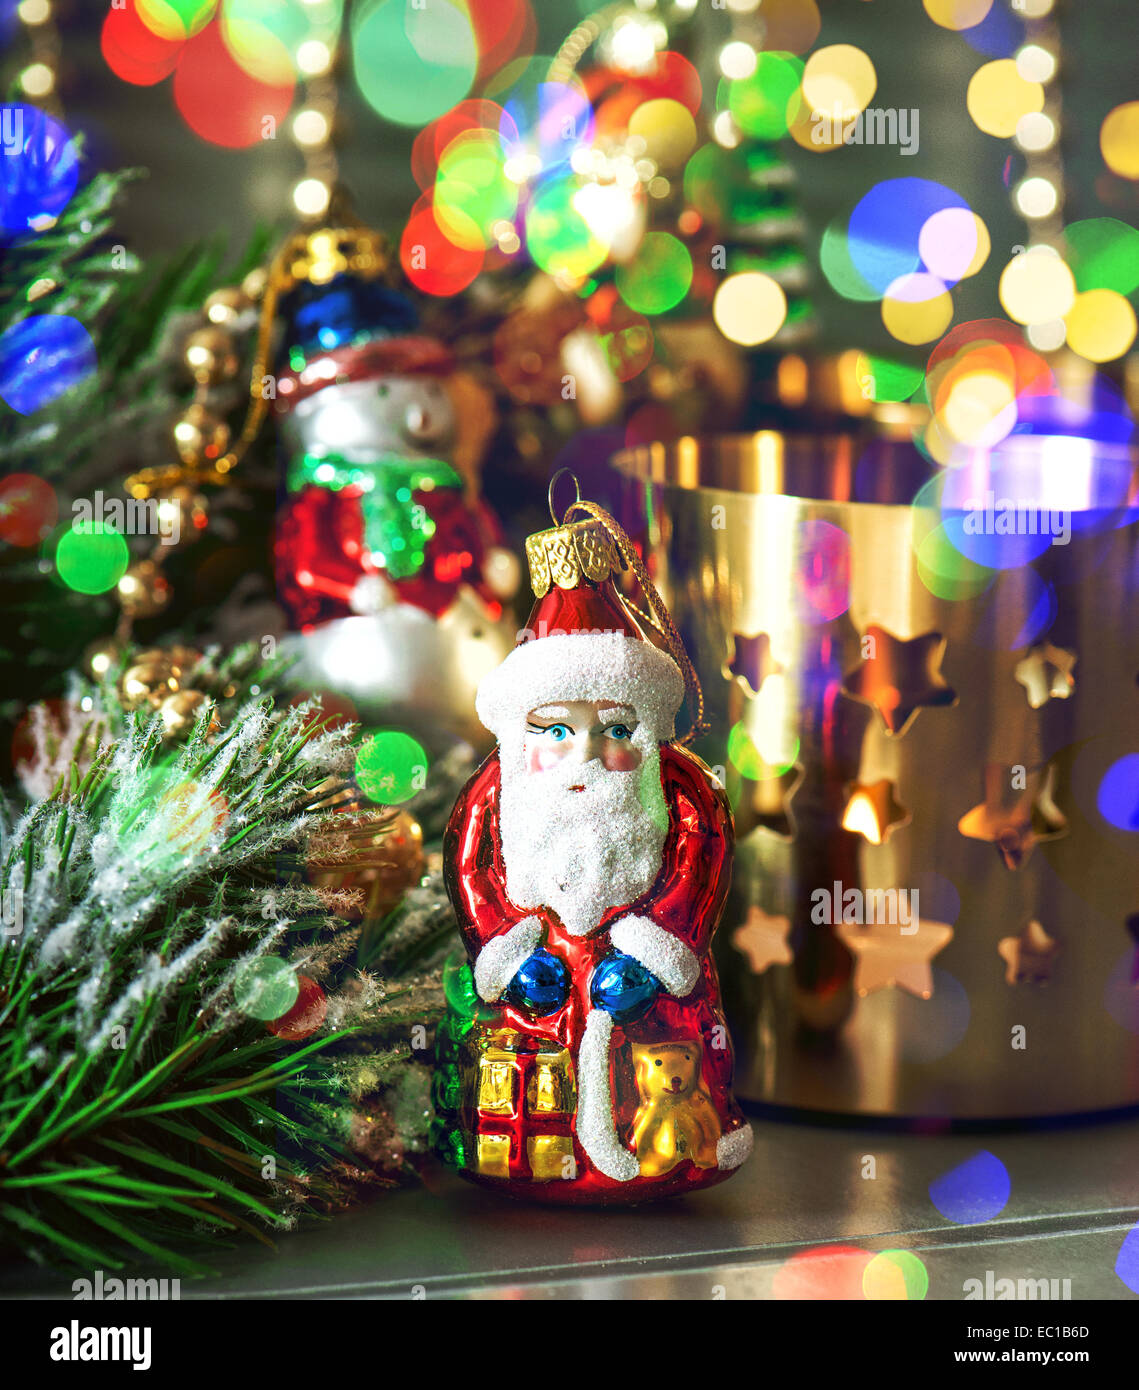 Colorful Blue Christmas Baubles Balls Stockfotos & Colorful Blue ...